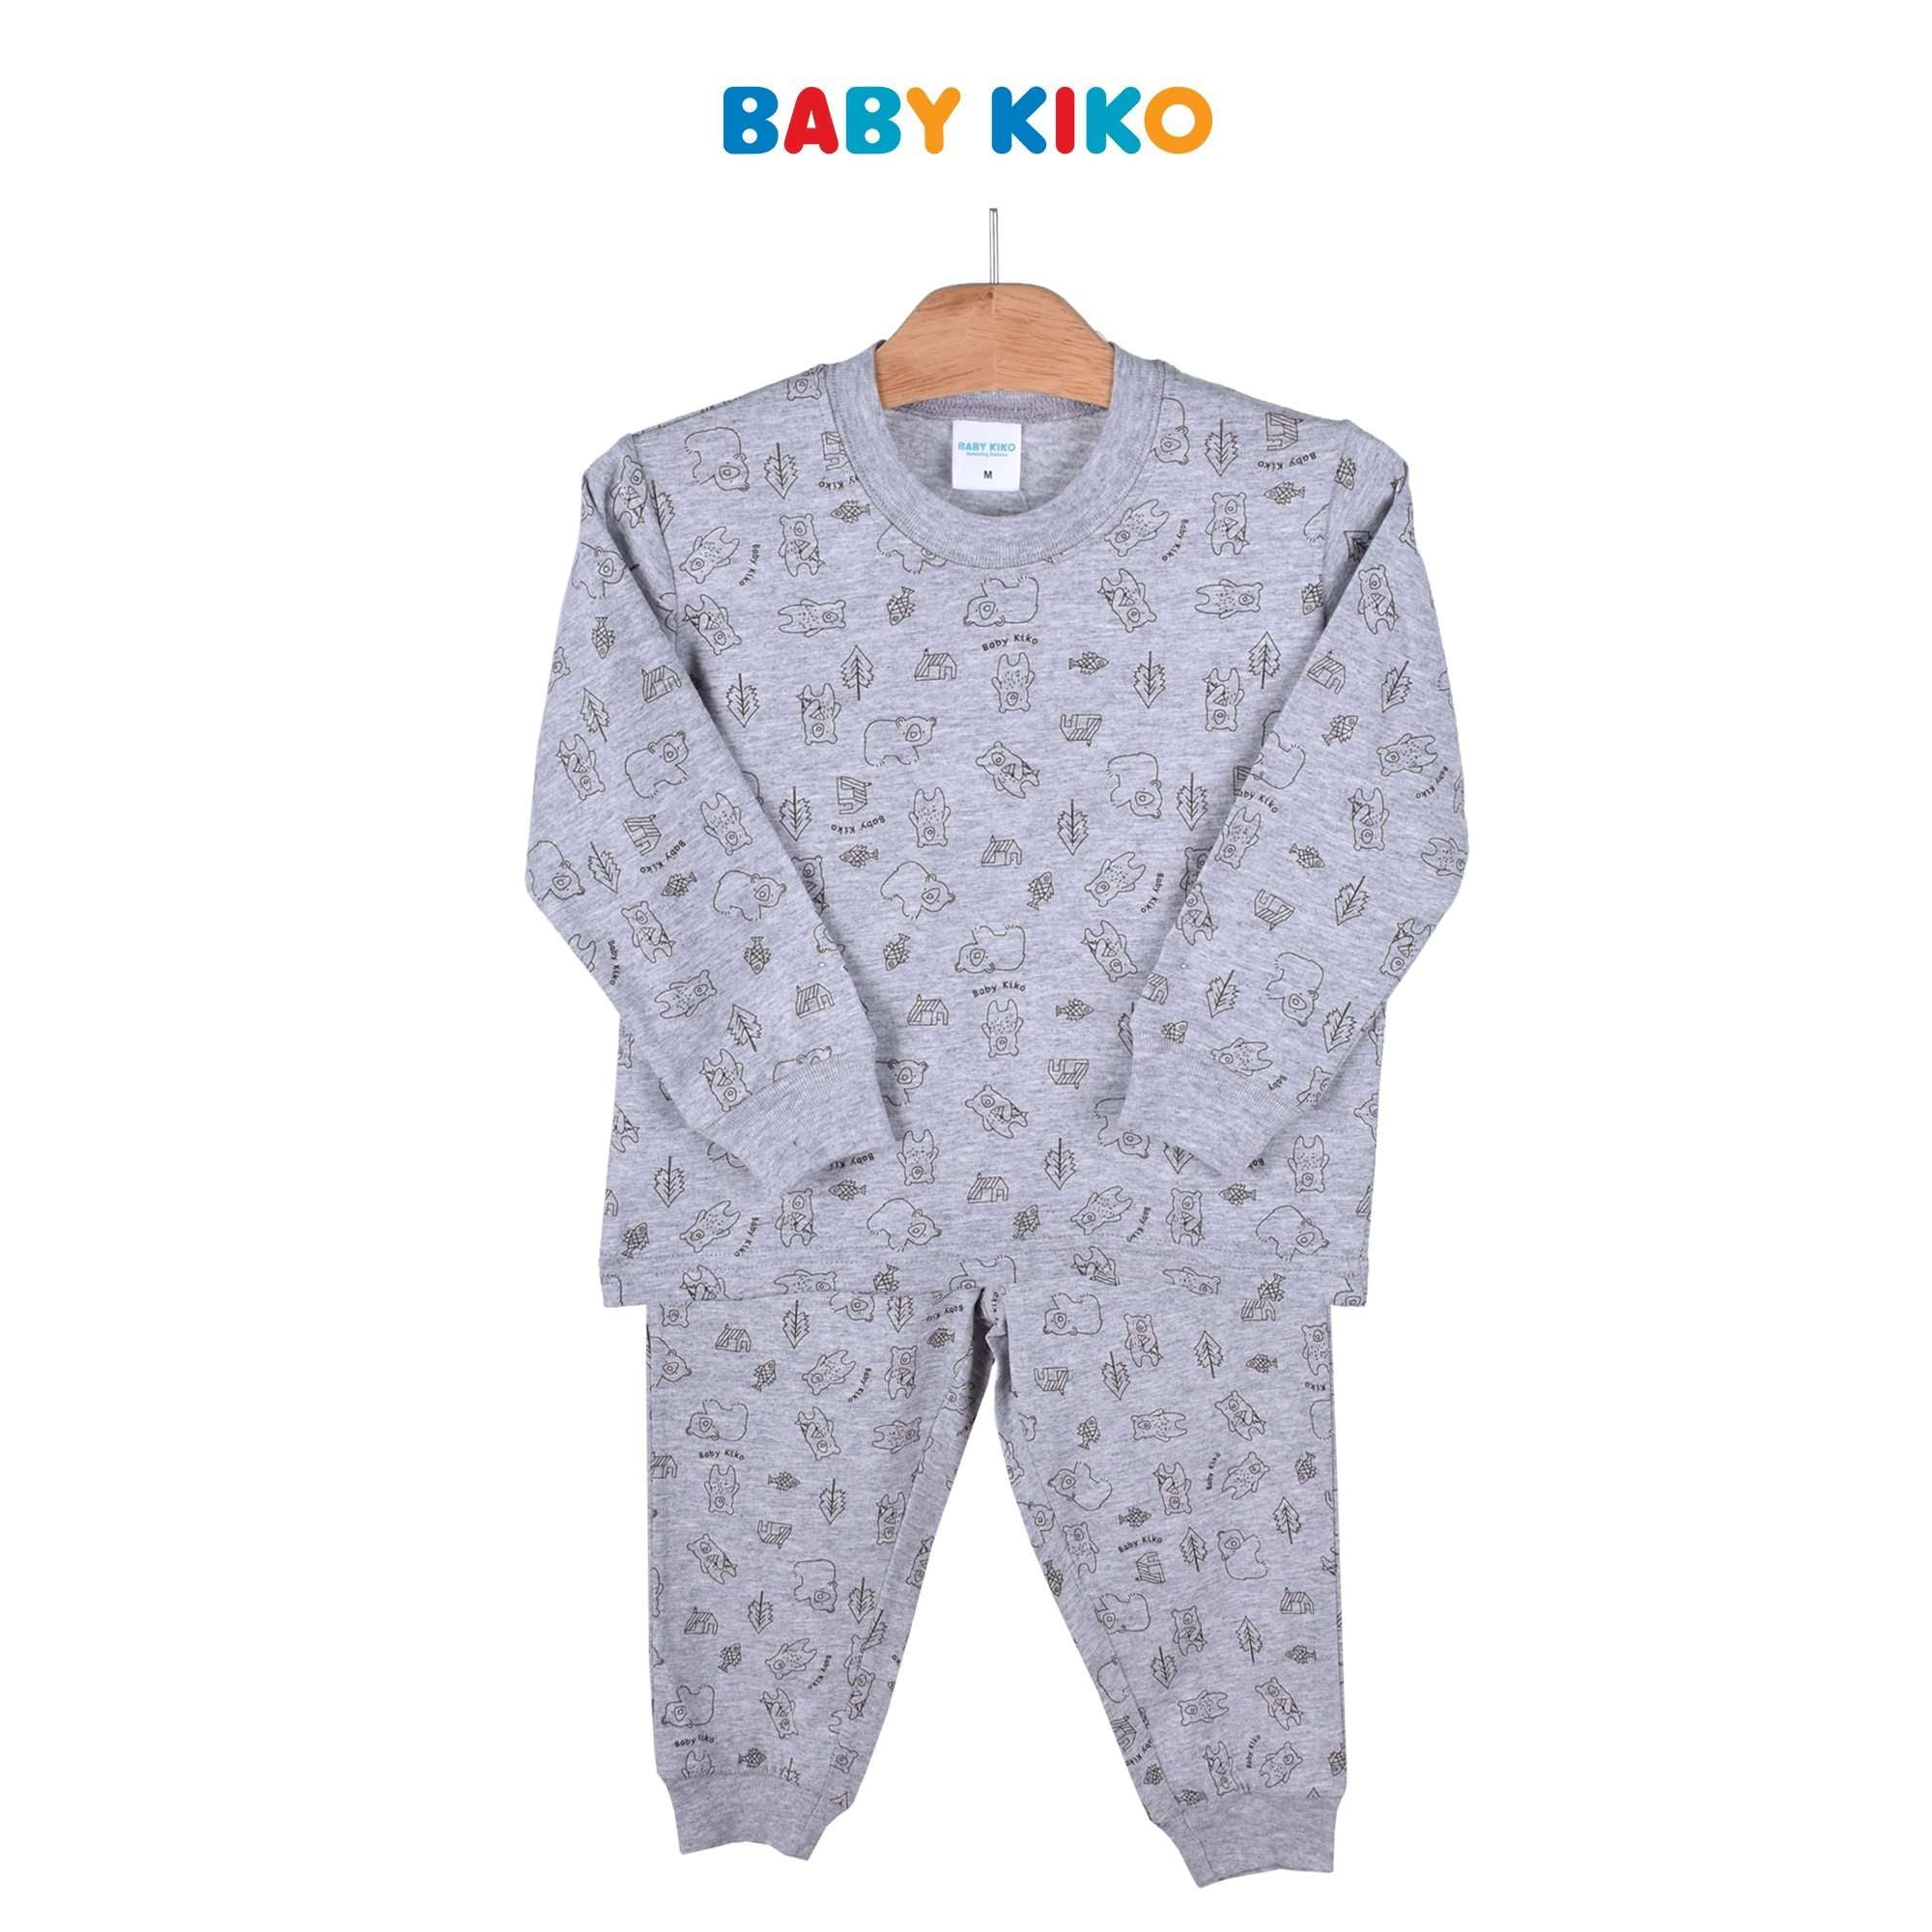 Baby KIKO Toddler Boy Pyjamas Long Sleeve Long Pants Suit 325150-431 : Buy Baby KIKO online at CMG.MY